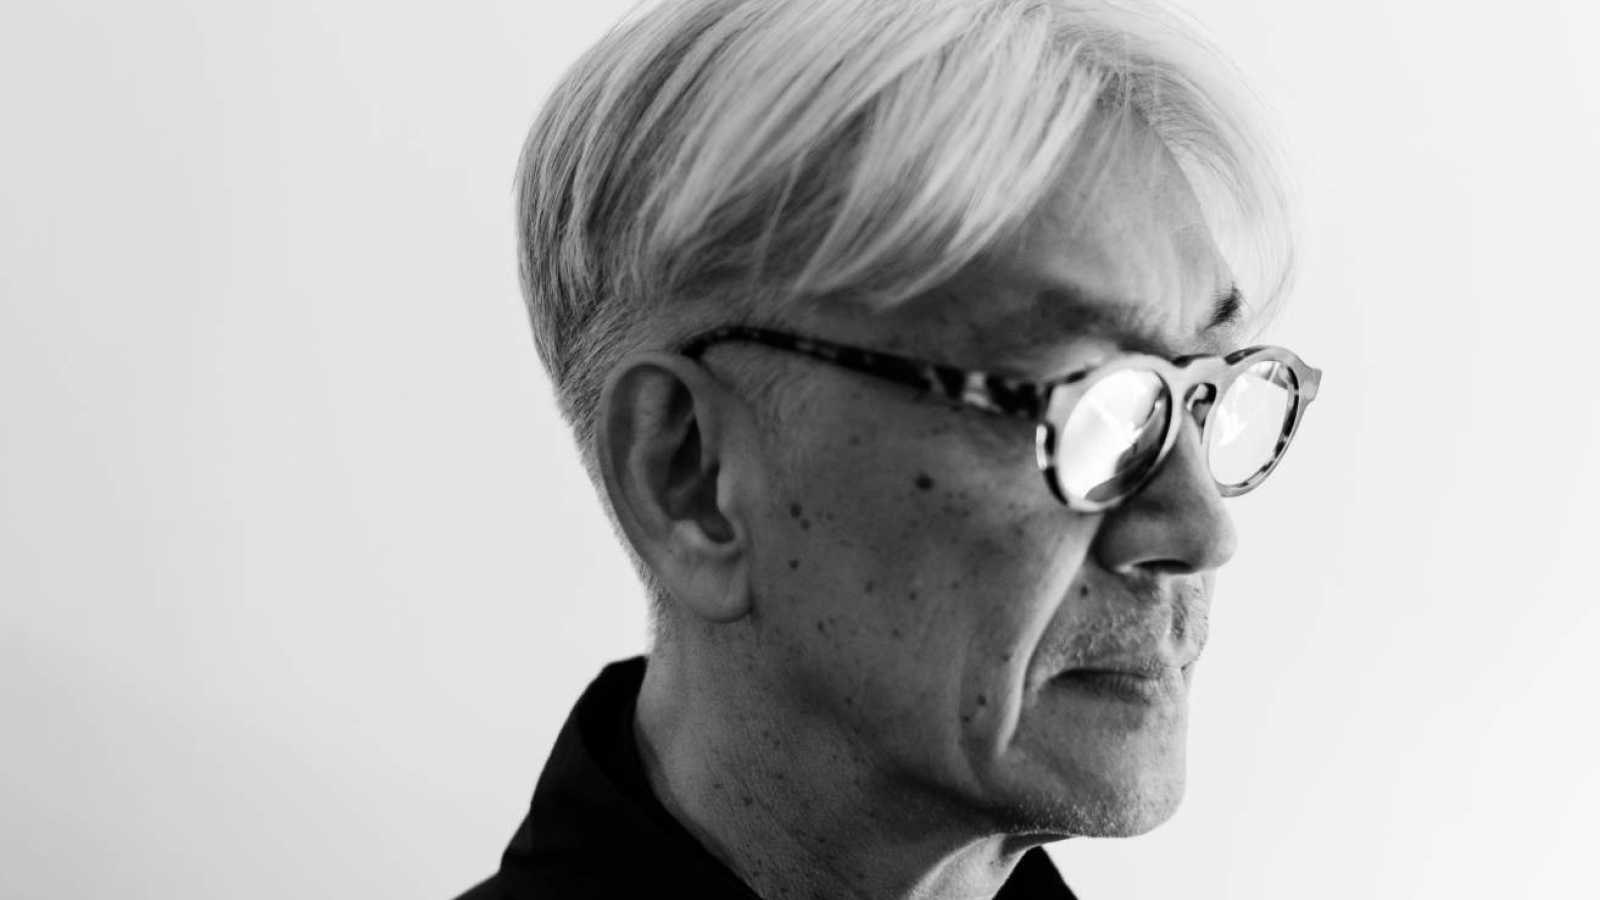 Ryuichi Sakamoto Announces Live Streaming Concert and Box Set Compiling 2020 Releases © Ryuichi Sakamoto. All rights reserved.